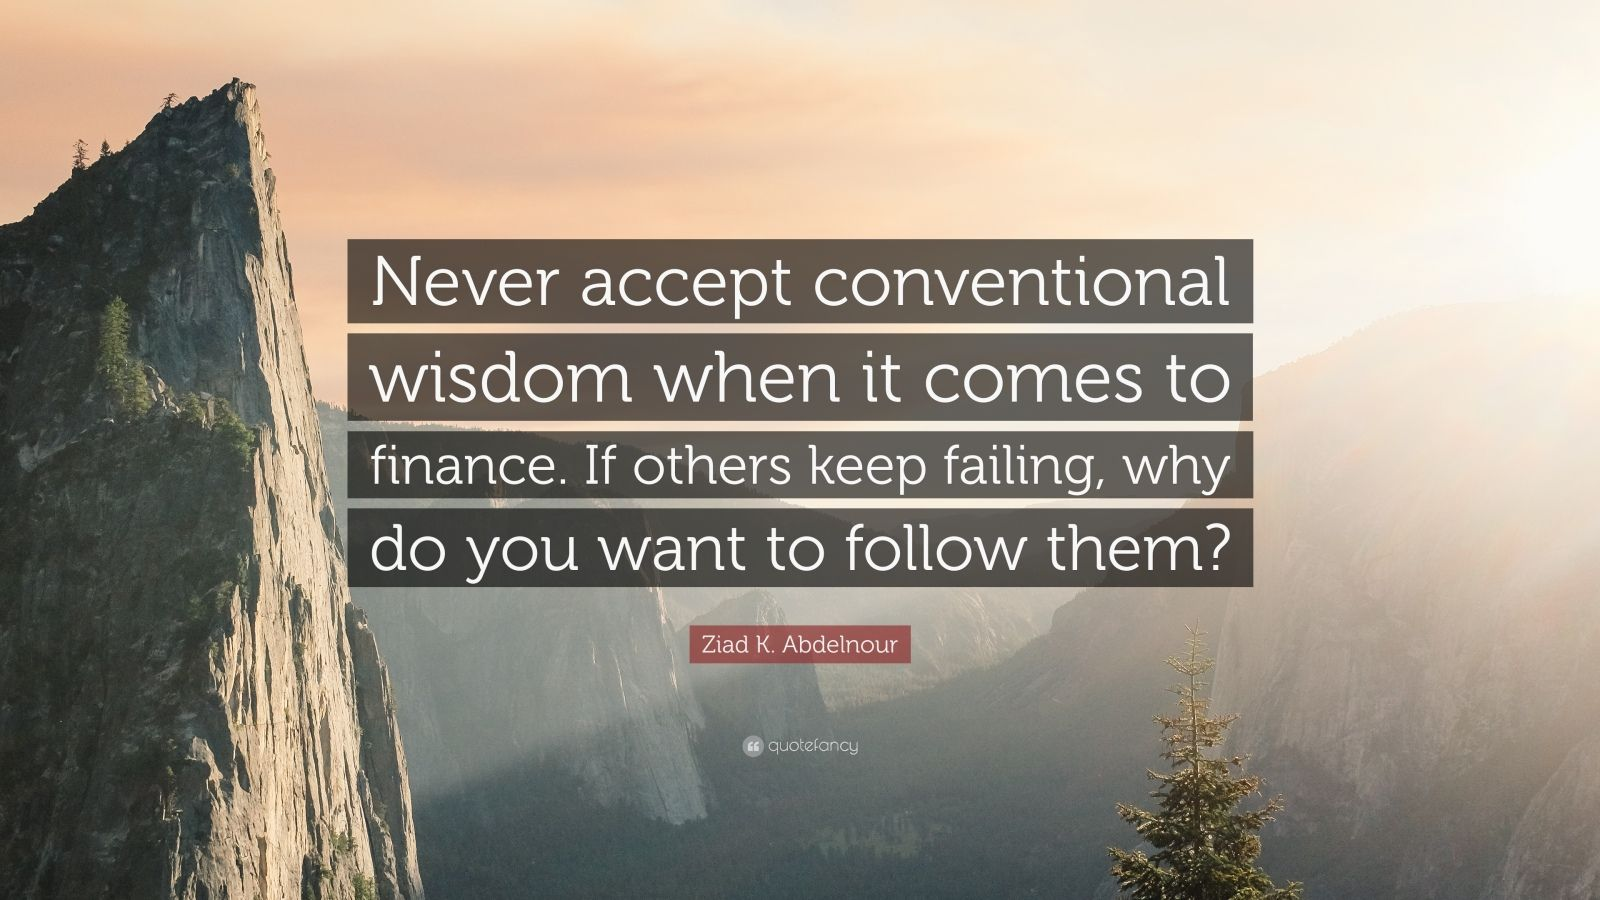 """Ziad K. Abdelnour Quote: """"Never accept conventional wisdom when it comes to finance. If others keep failing, why do you want to follow them?"""""""